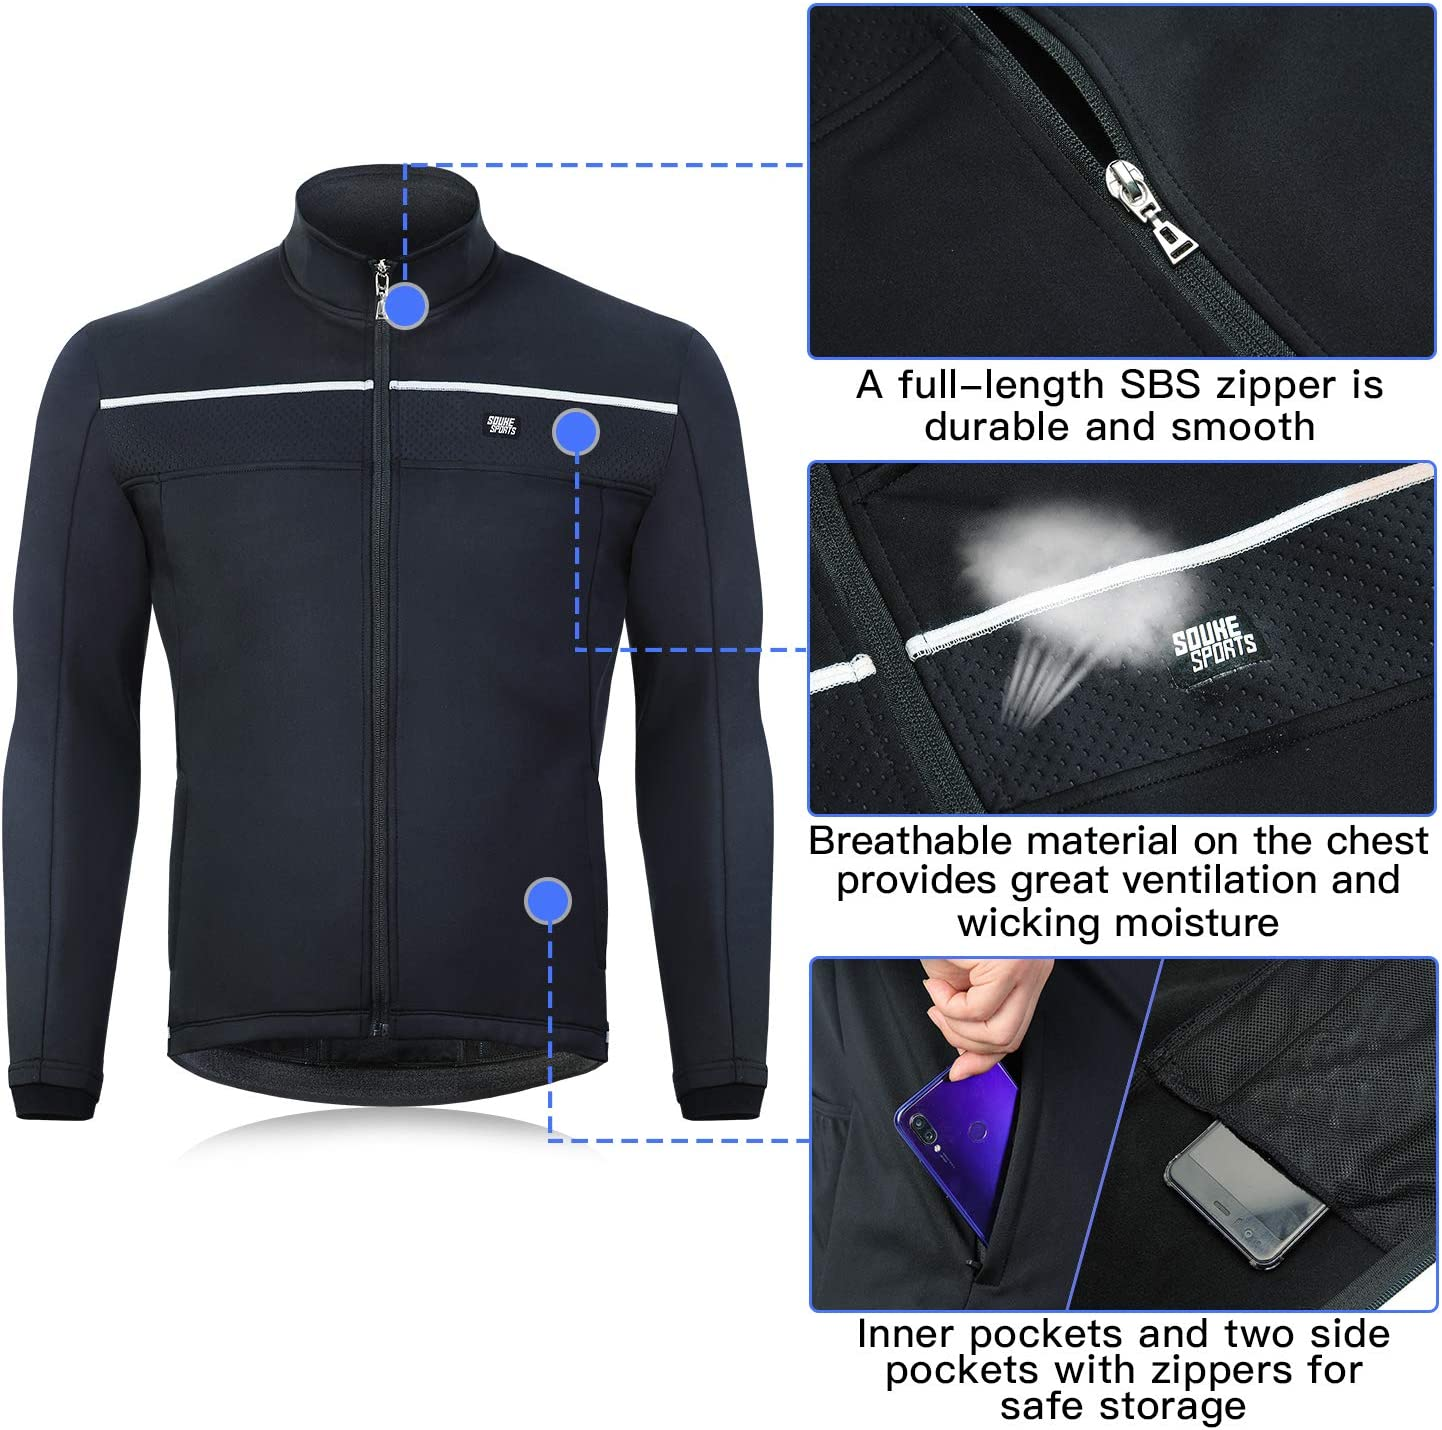 Souke Sports Men/'s Winter Cycling Jacket Warm Windproof Running Water Resistant Thermal Breathable Softshell Windbreaker Reflective for Bike Riding